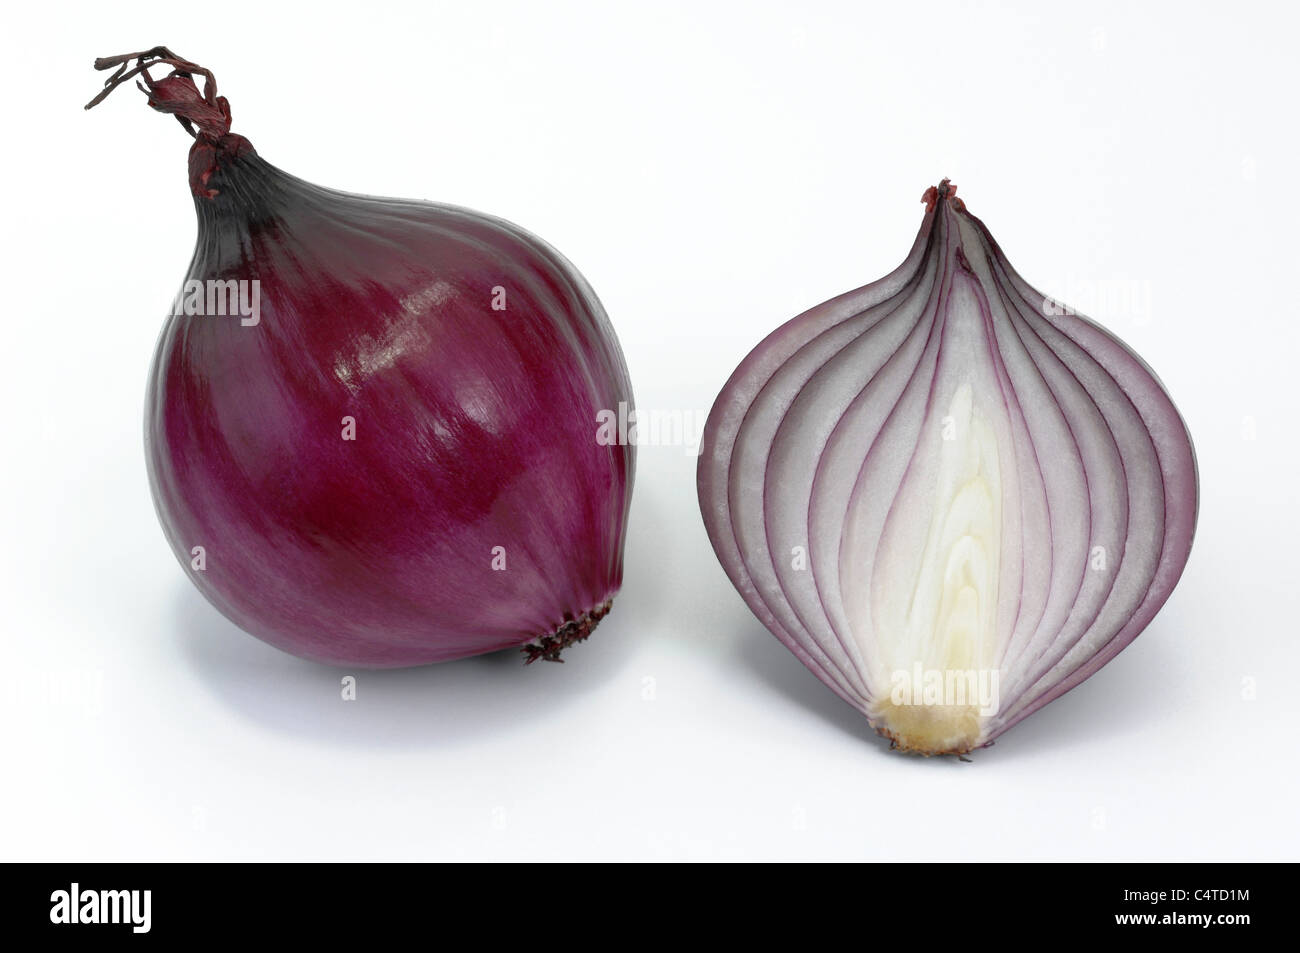 Garden Onion (Allium cepa). Red onion, whole and halved. Studio picture against a white background. - Stock Image